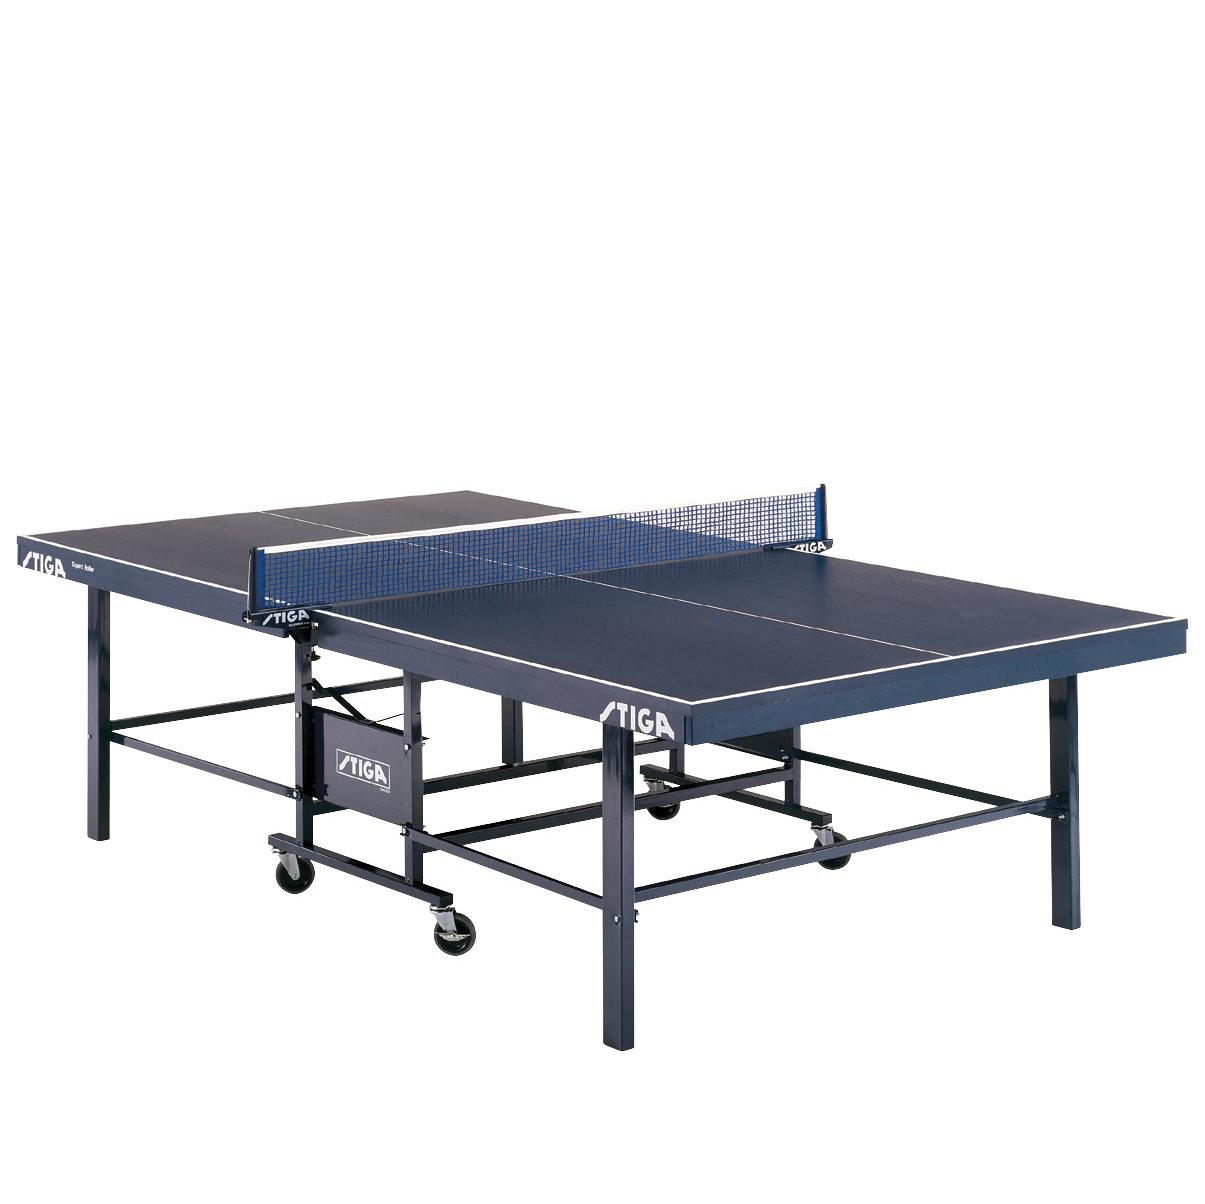 Folding Ping Pong Table Top picture on Folding Ping Pong Table TopB000BO14VO with Folding Ping Pong Table Top, Folding Table e1738225816ce2f87de5cd4e269fd2f4